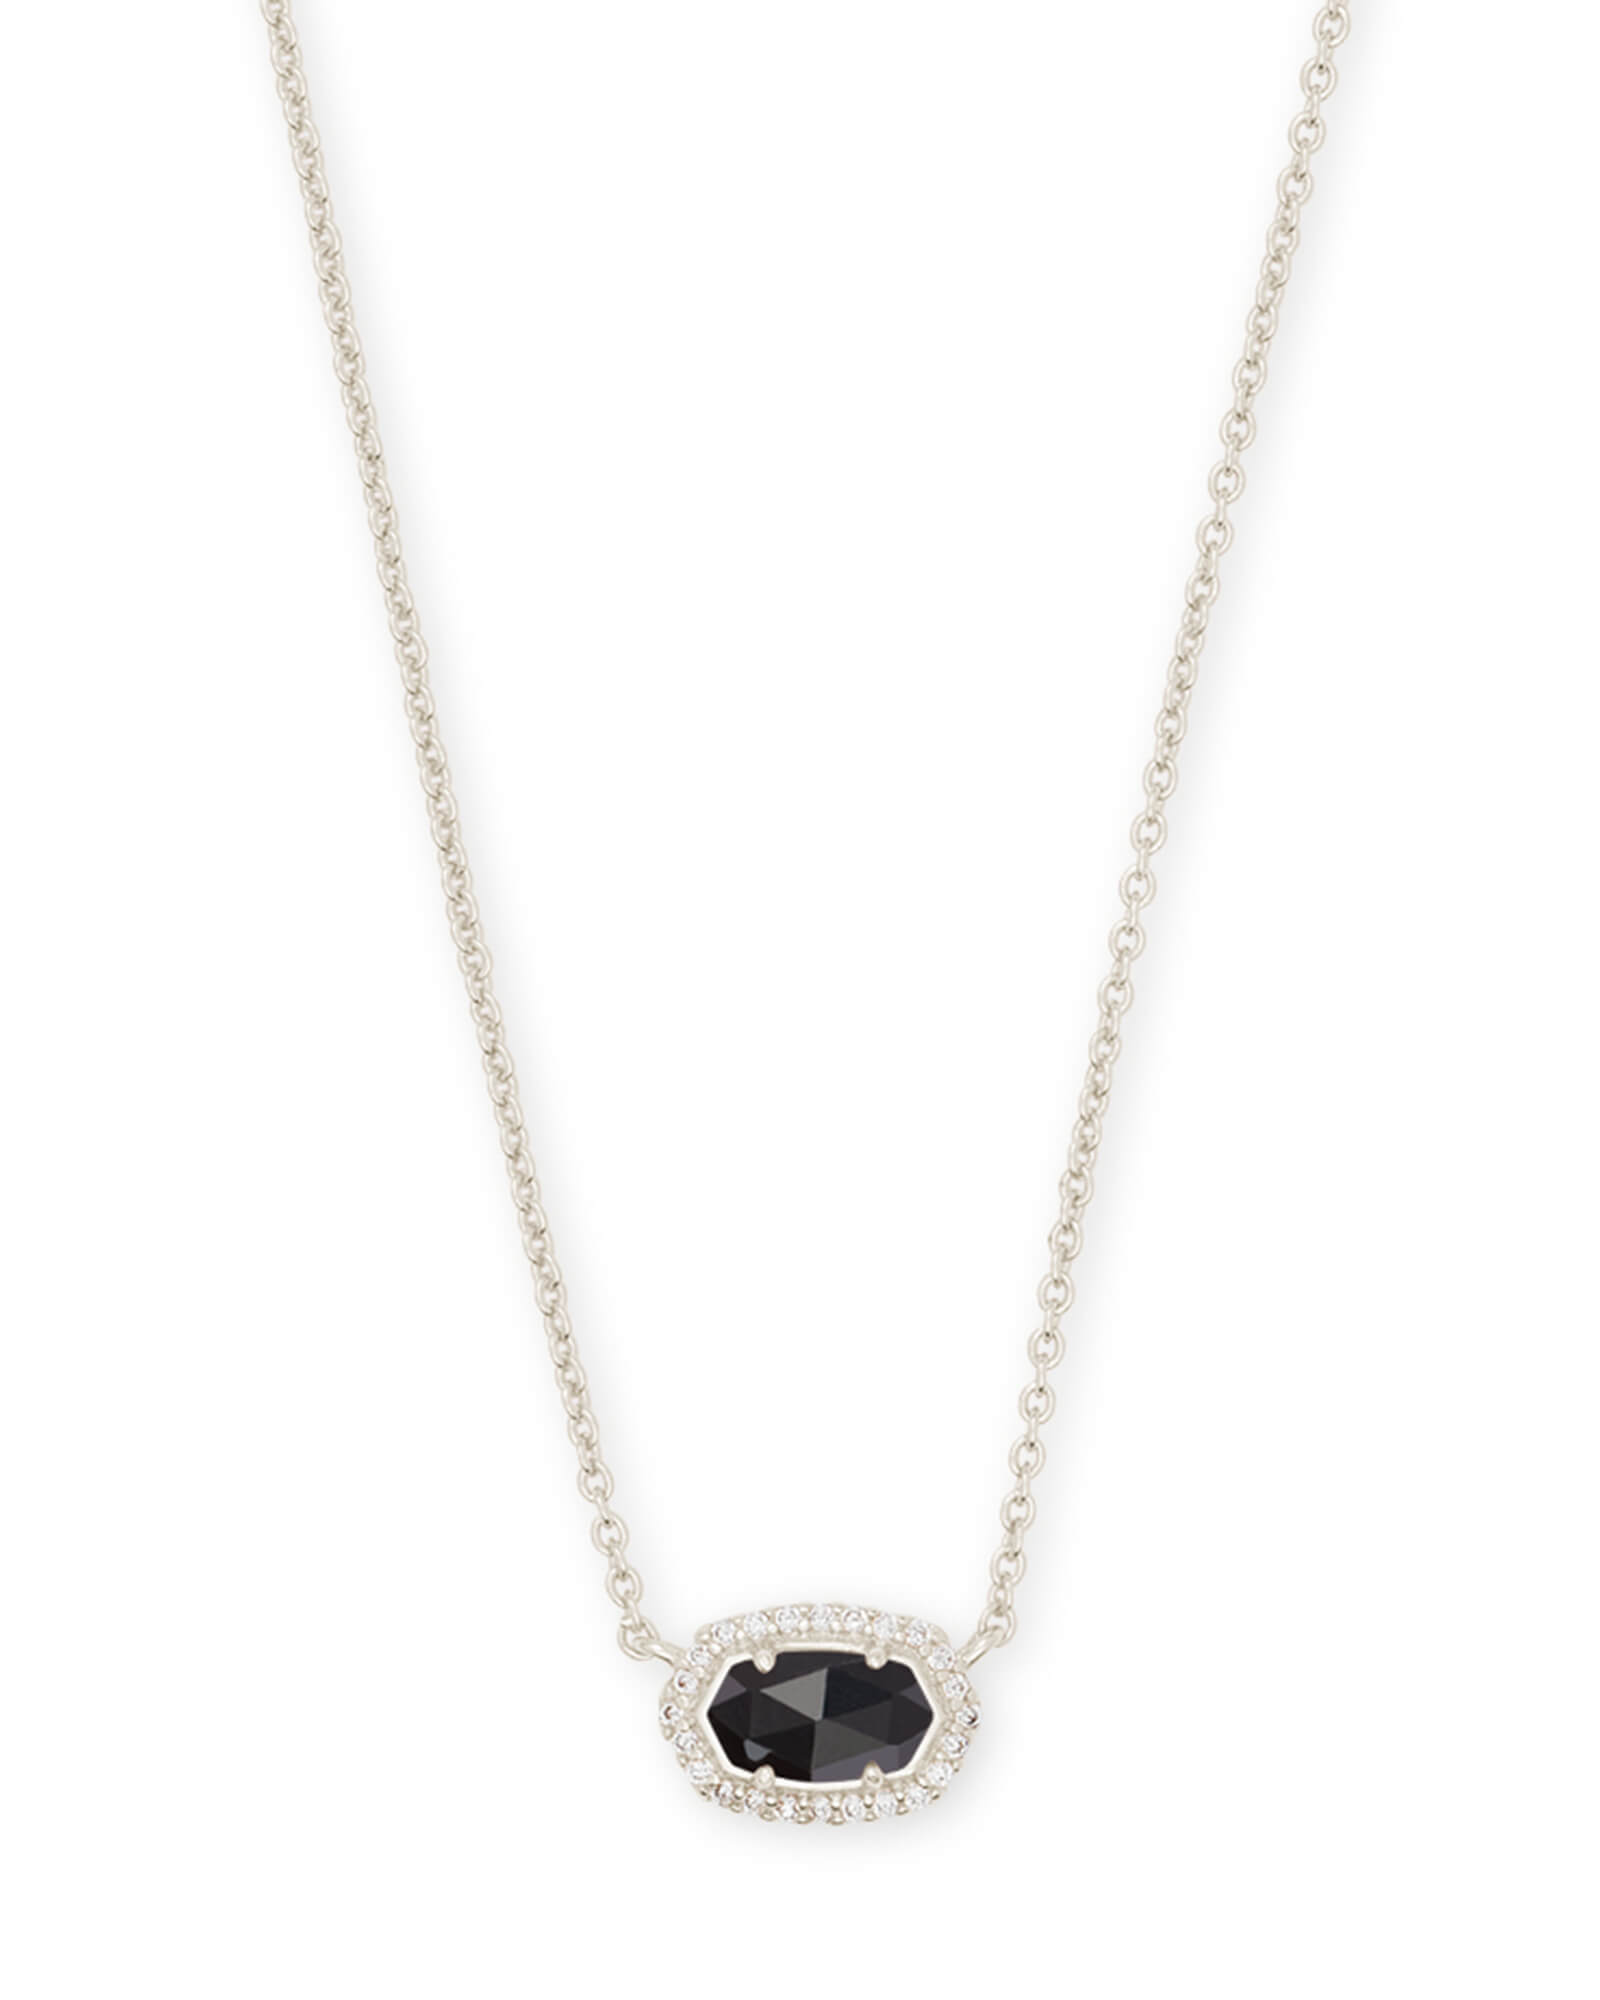 Chelsea Silver Pendant Necklace in Black